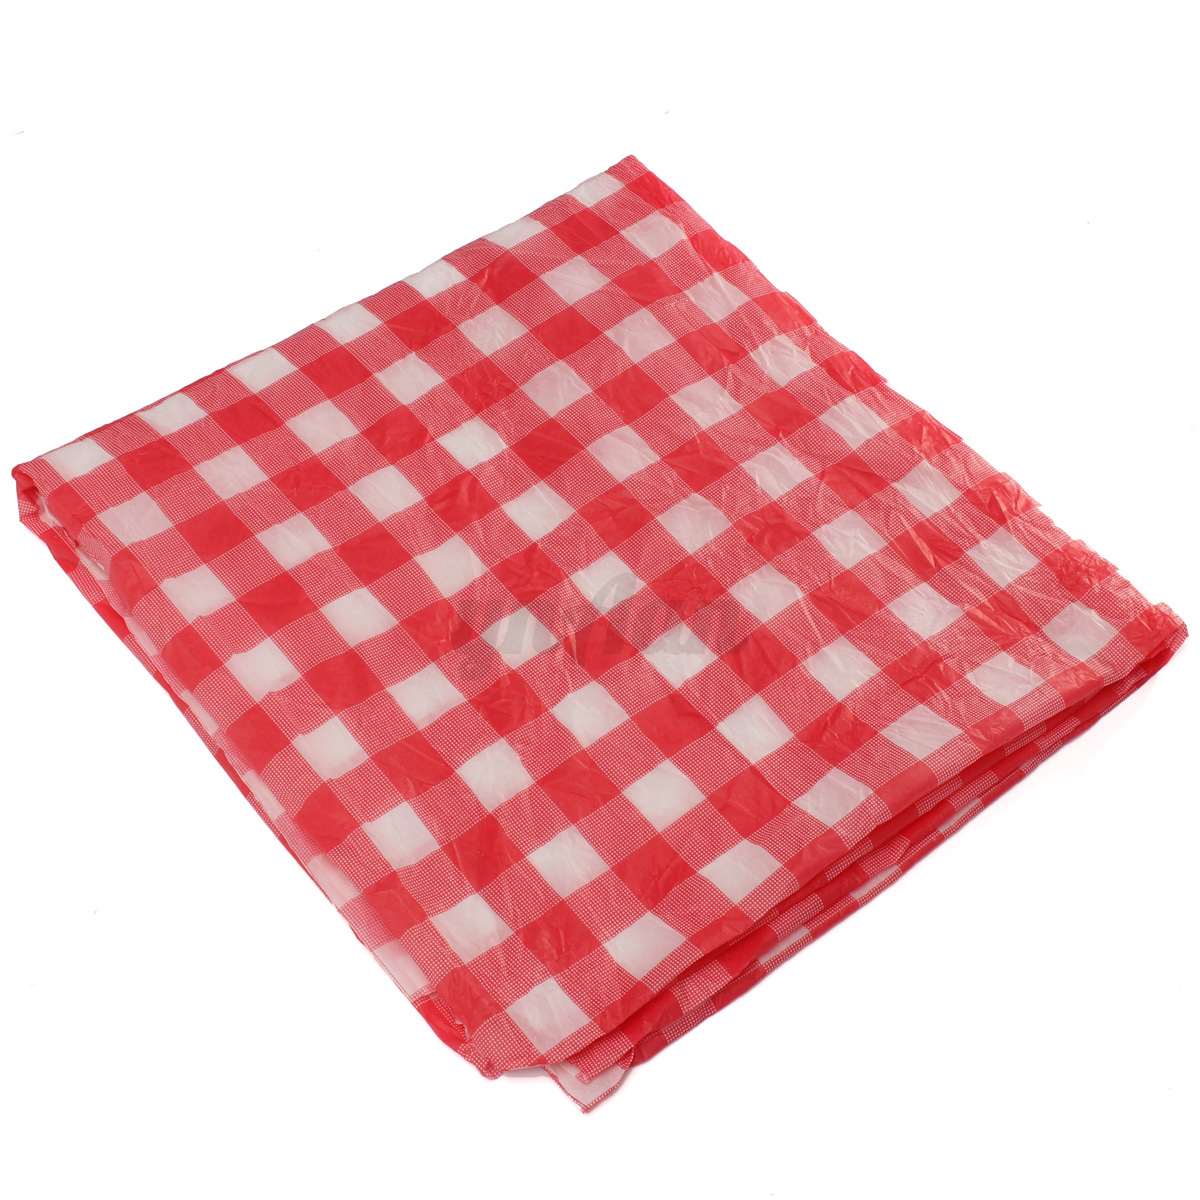 disposable plastic chair covers for parties kids chairs walmart plaid table cover cloth tablecloth